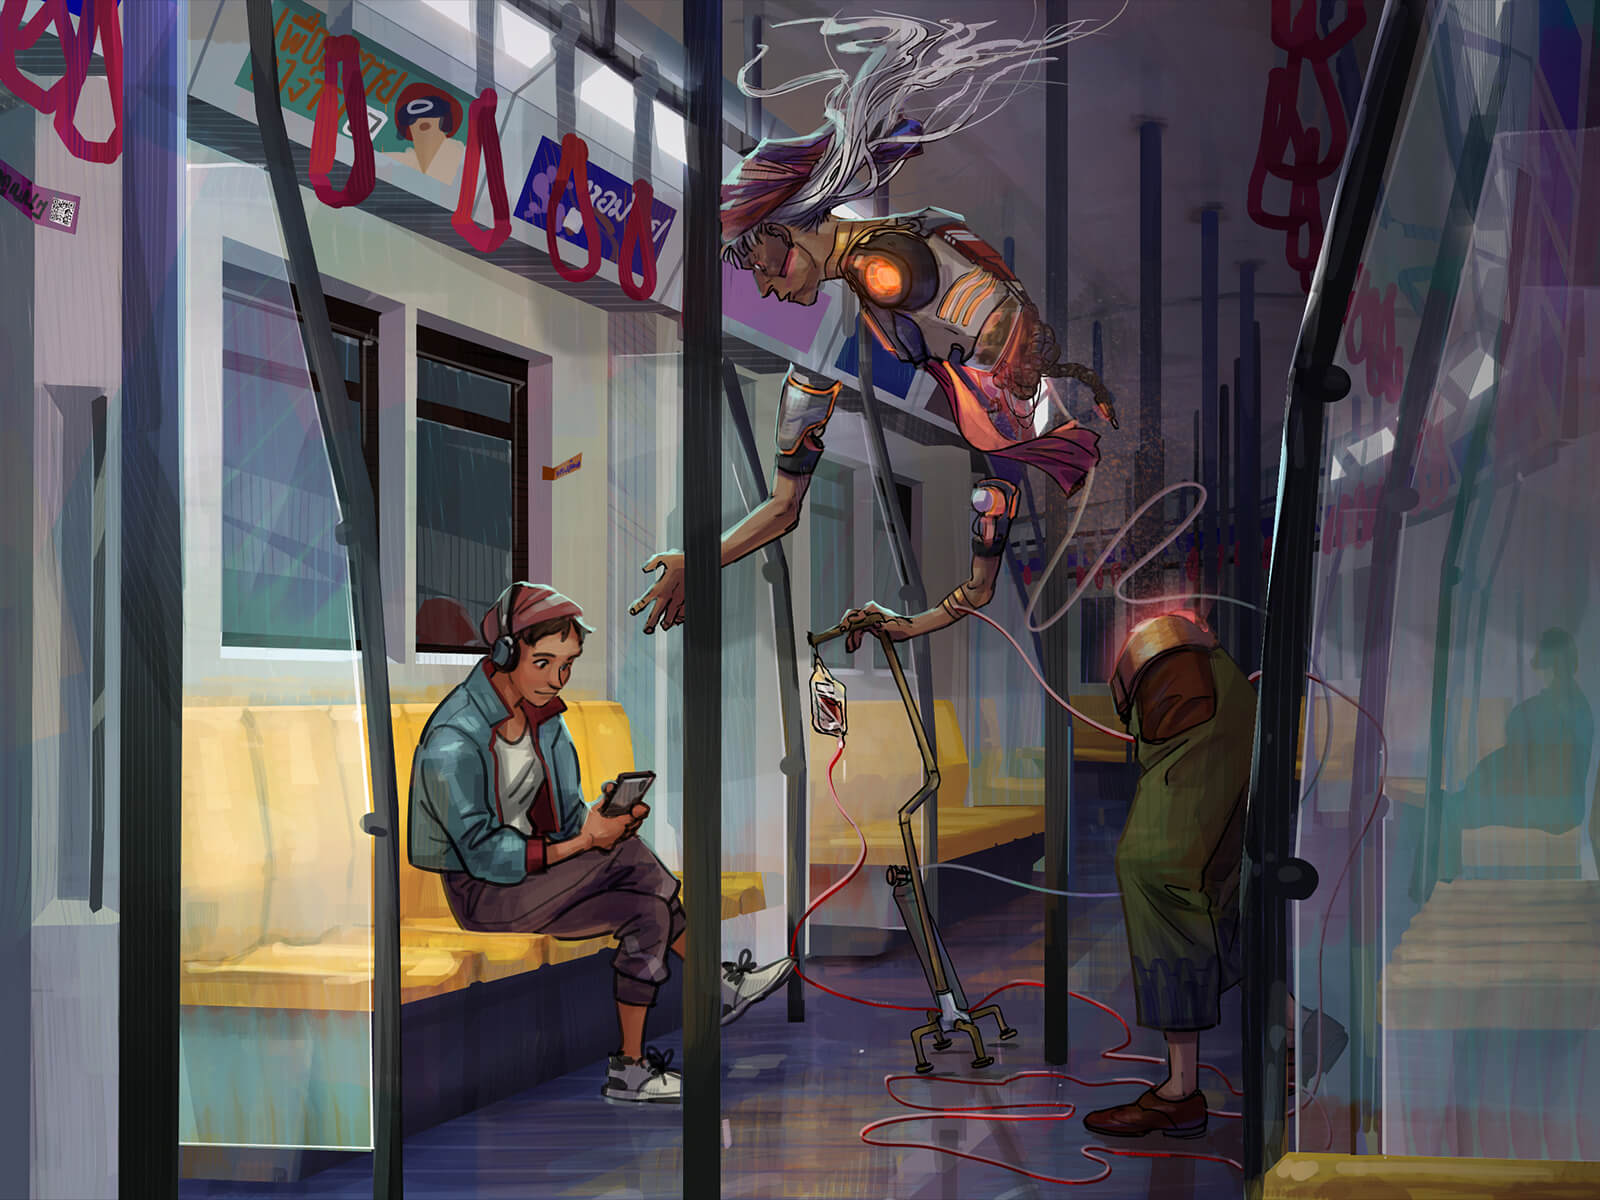 A mysterious half-human character is ignored by a person on the subway